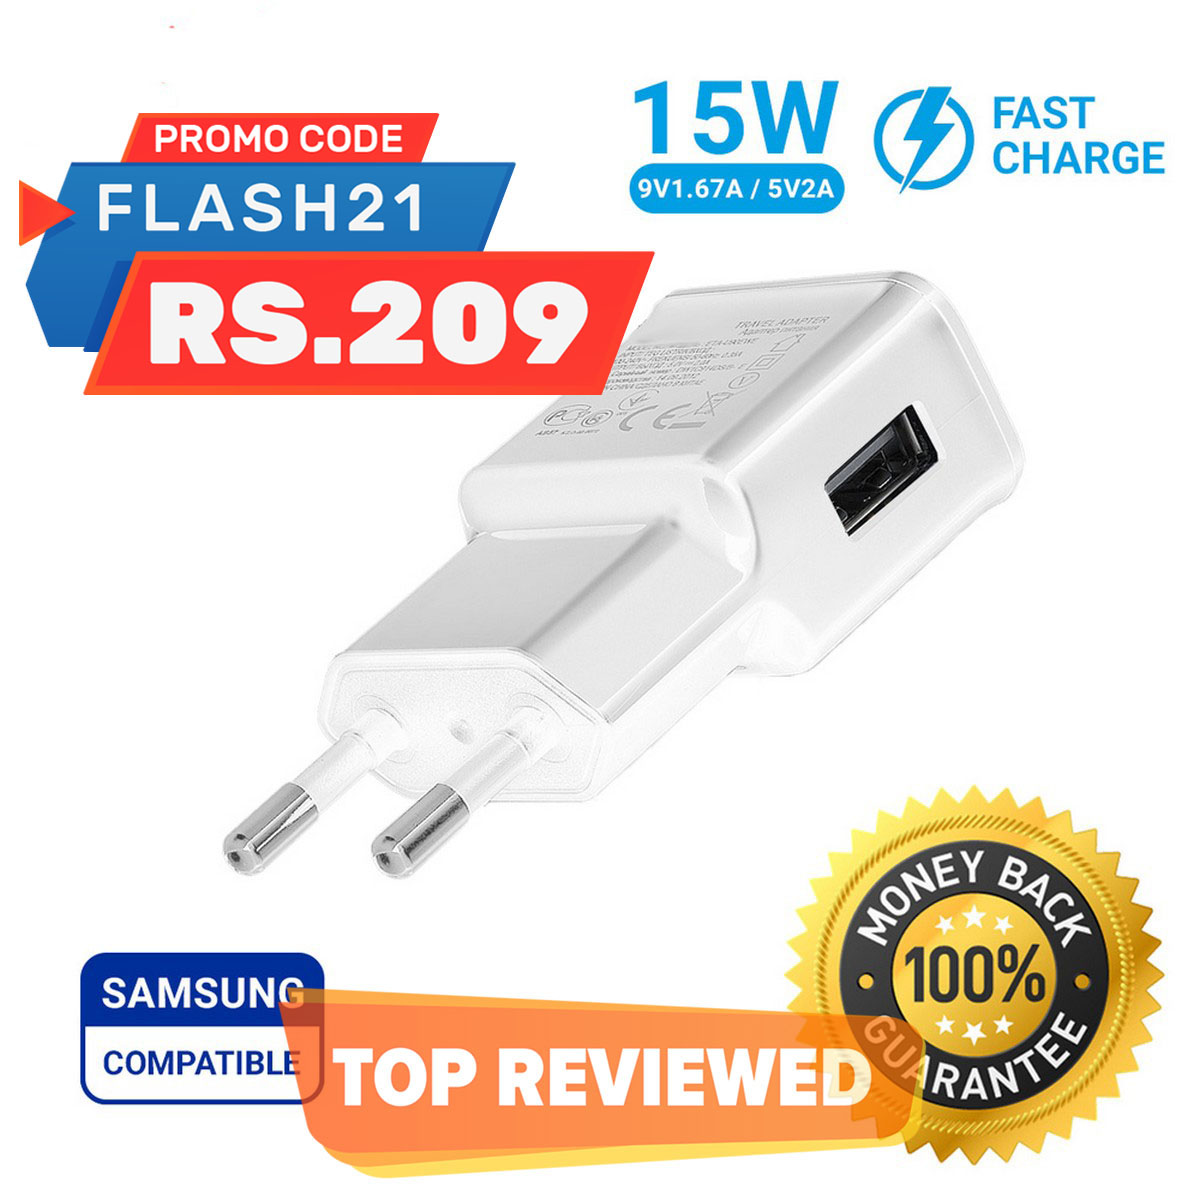 Adaptive Fast Charger Quick Charge for Samsung Oppo Huawei Honor Real-me Tecno & Other Smartphones